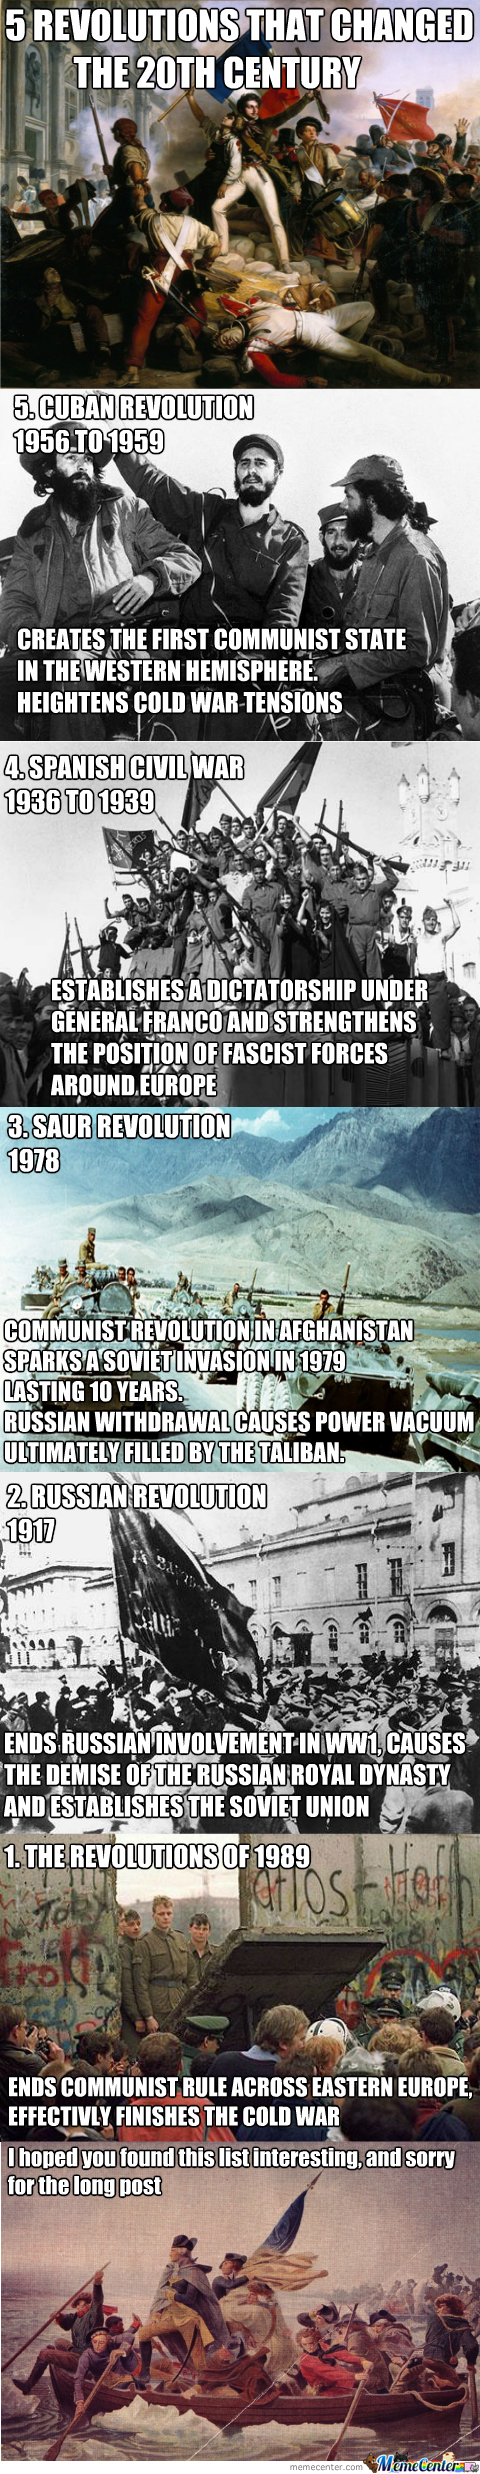 5 Revolutions That Changed The 20Th Century